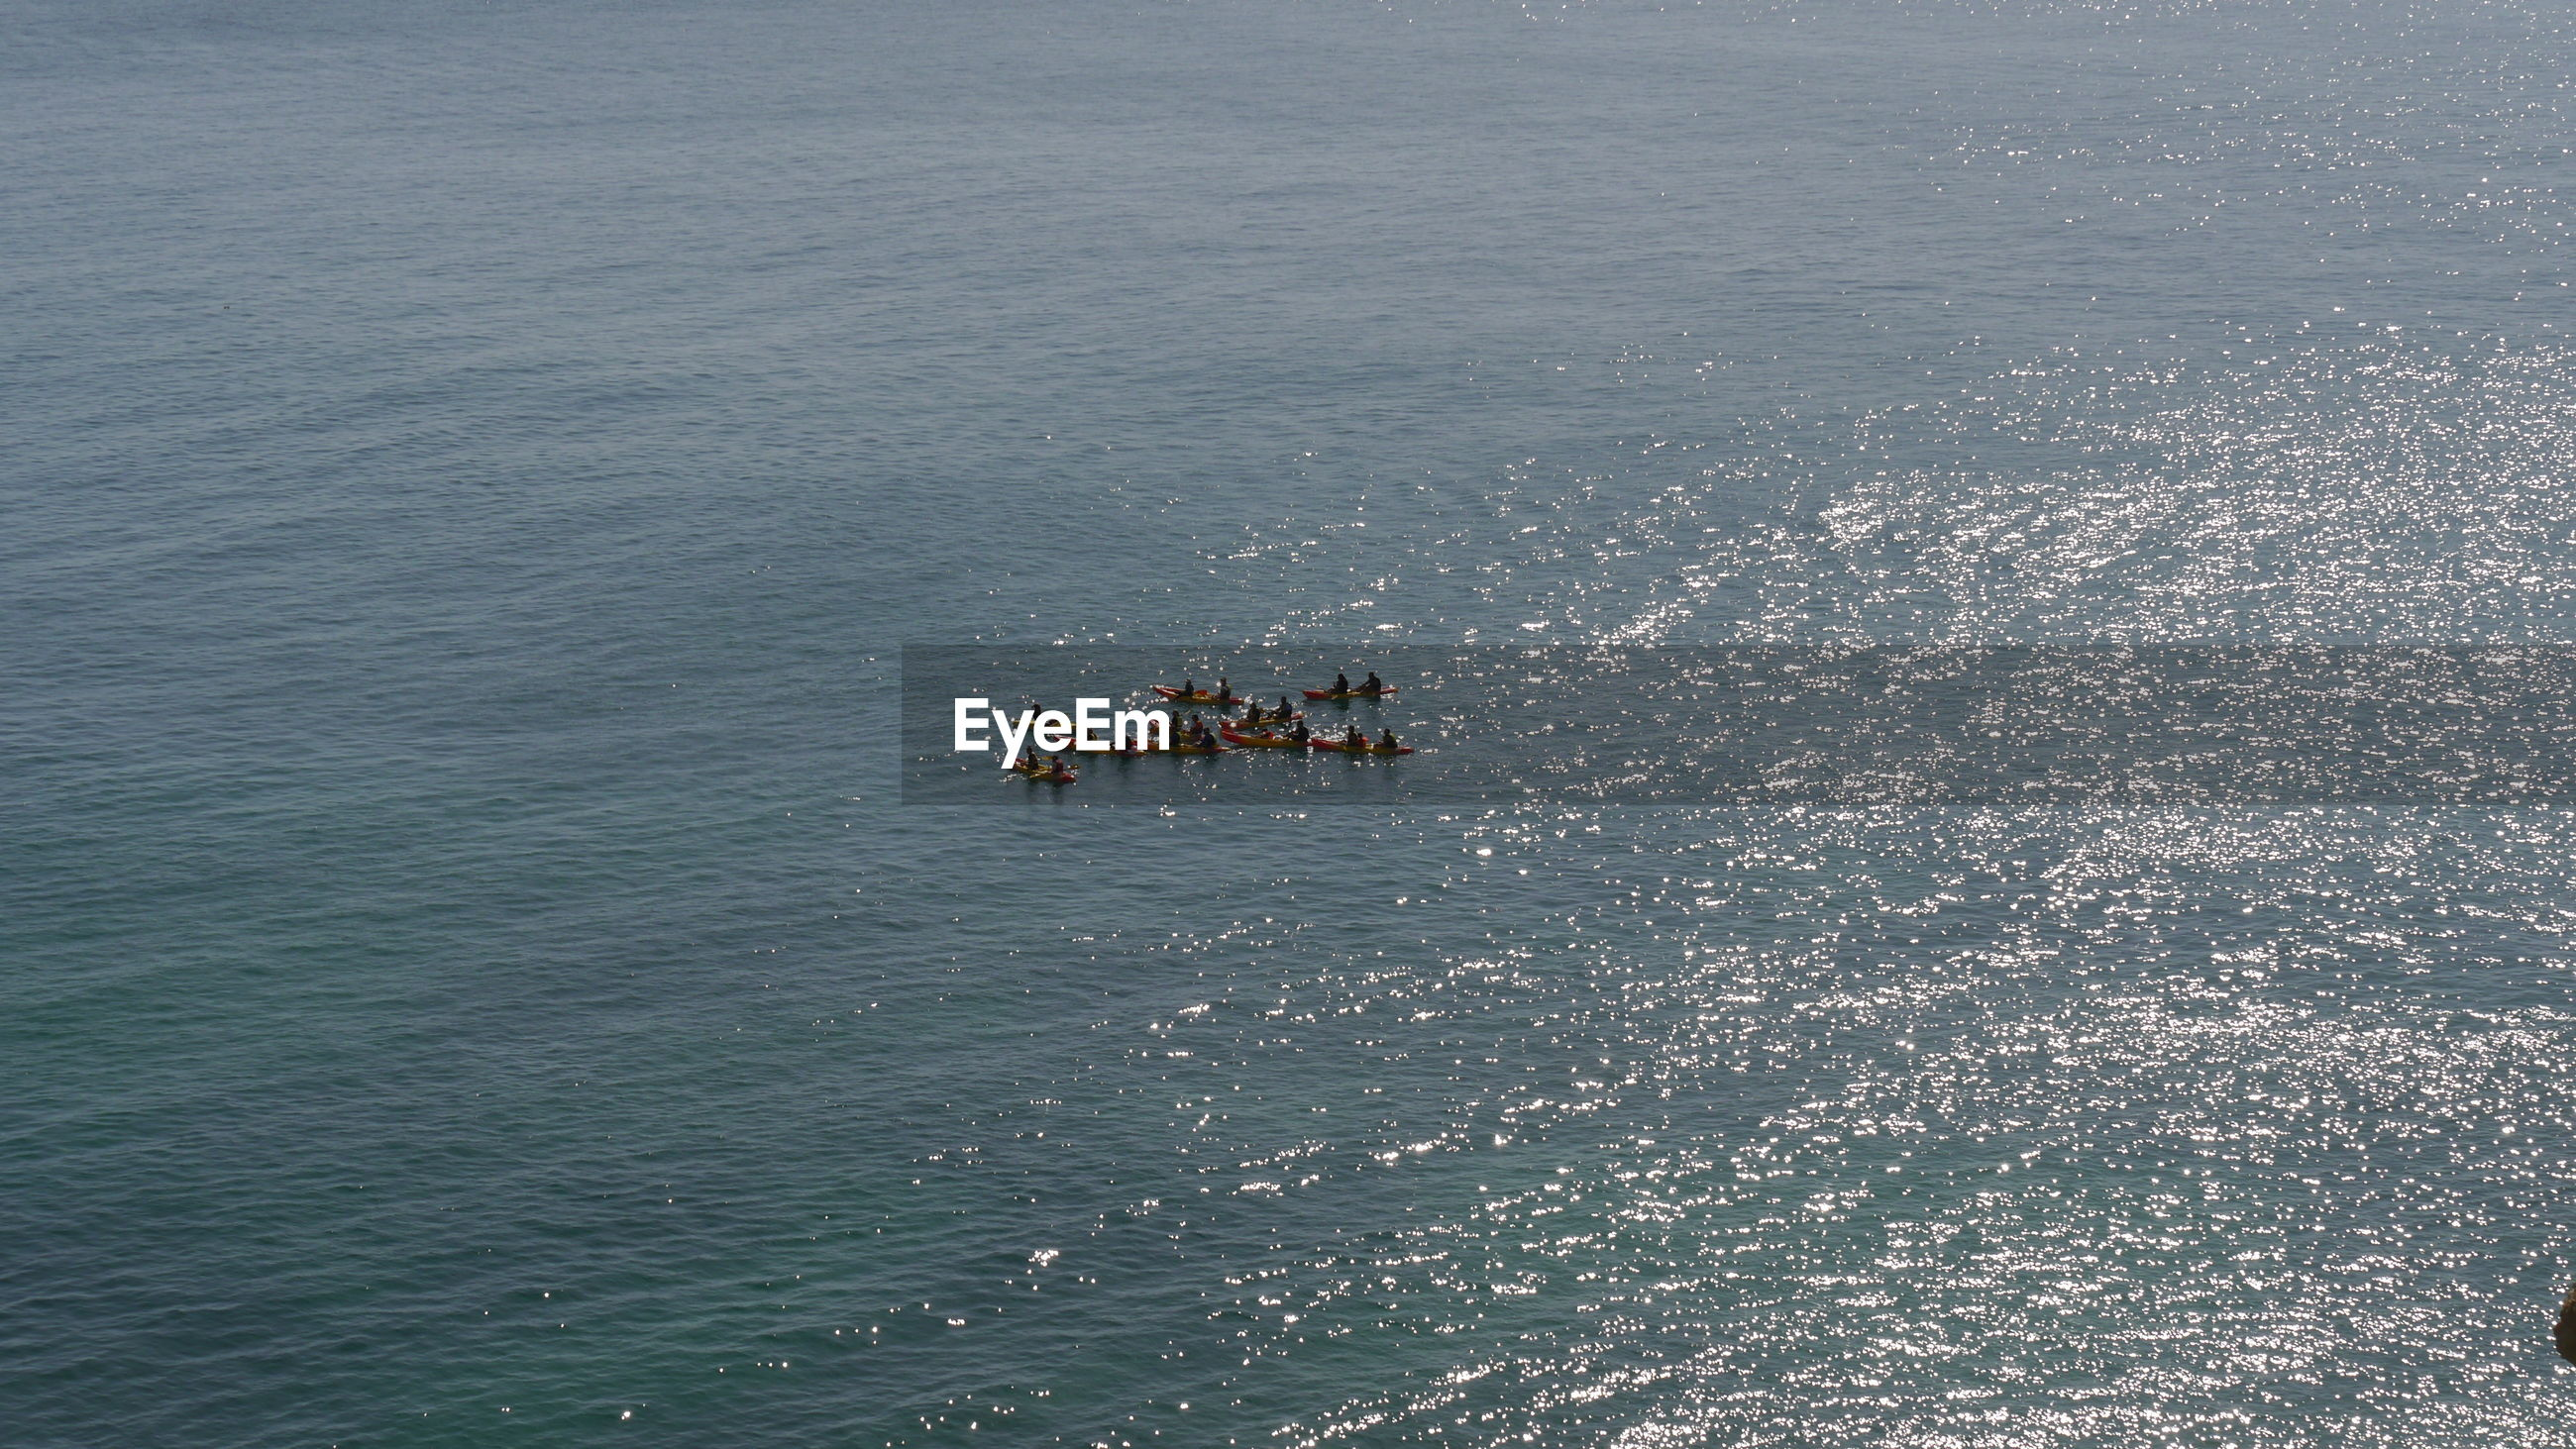 High angle view of people in conoes on sea